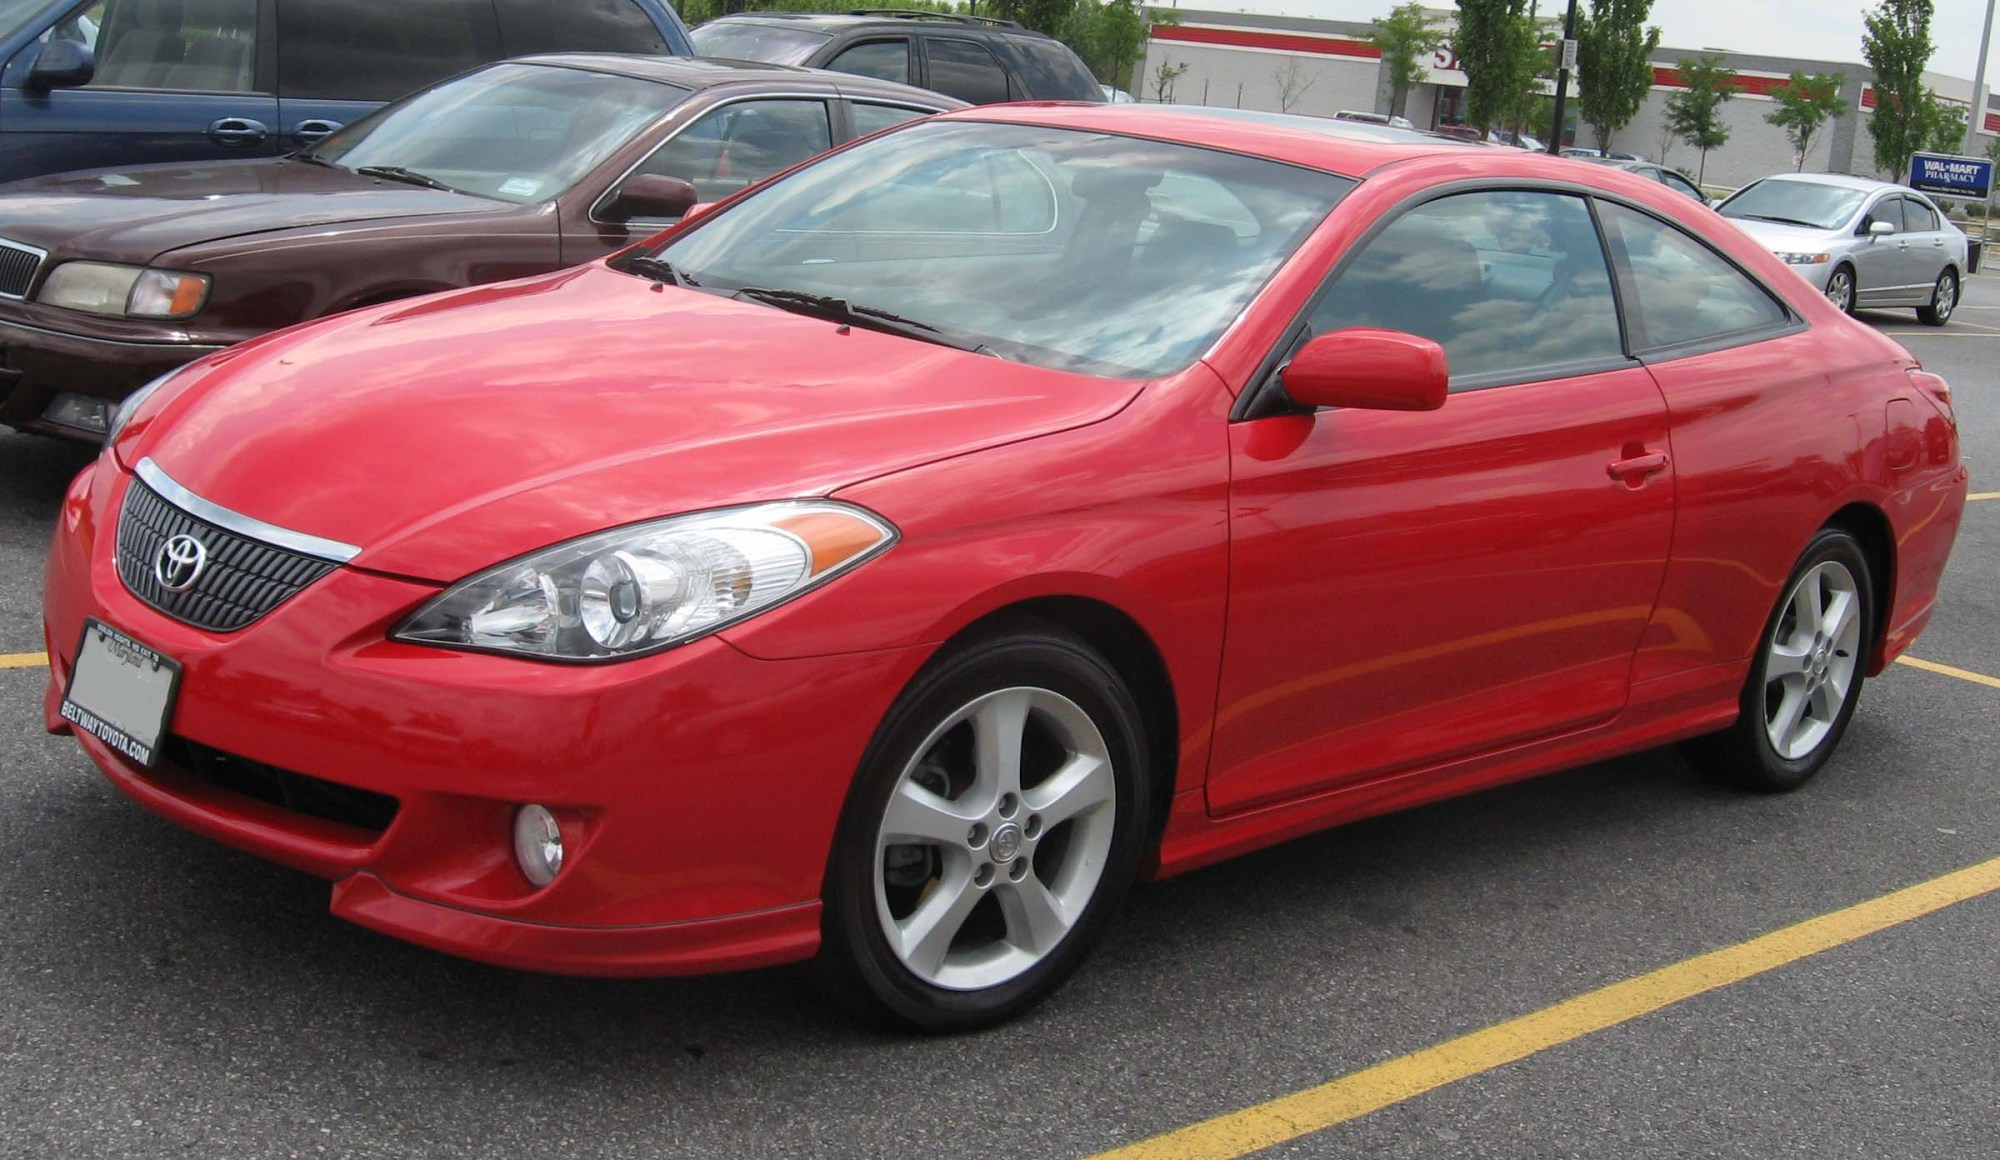 hight resolution of toyota solara wallpaper 3